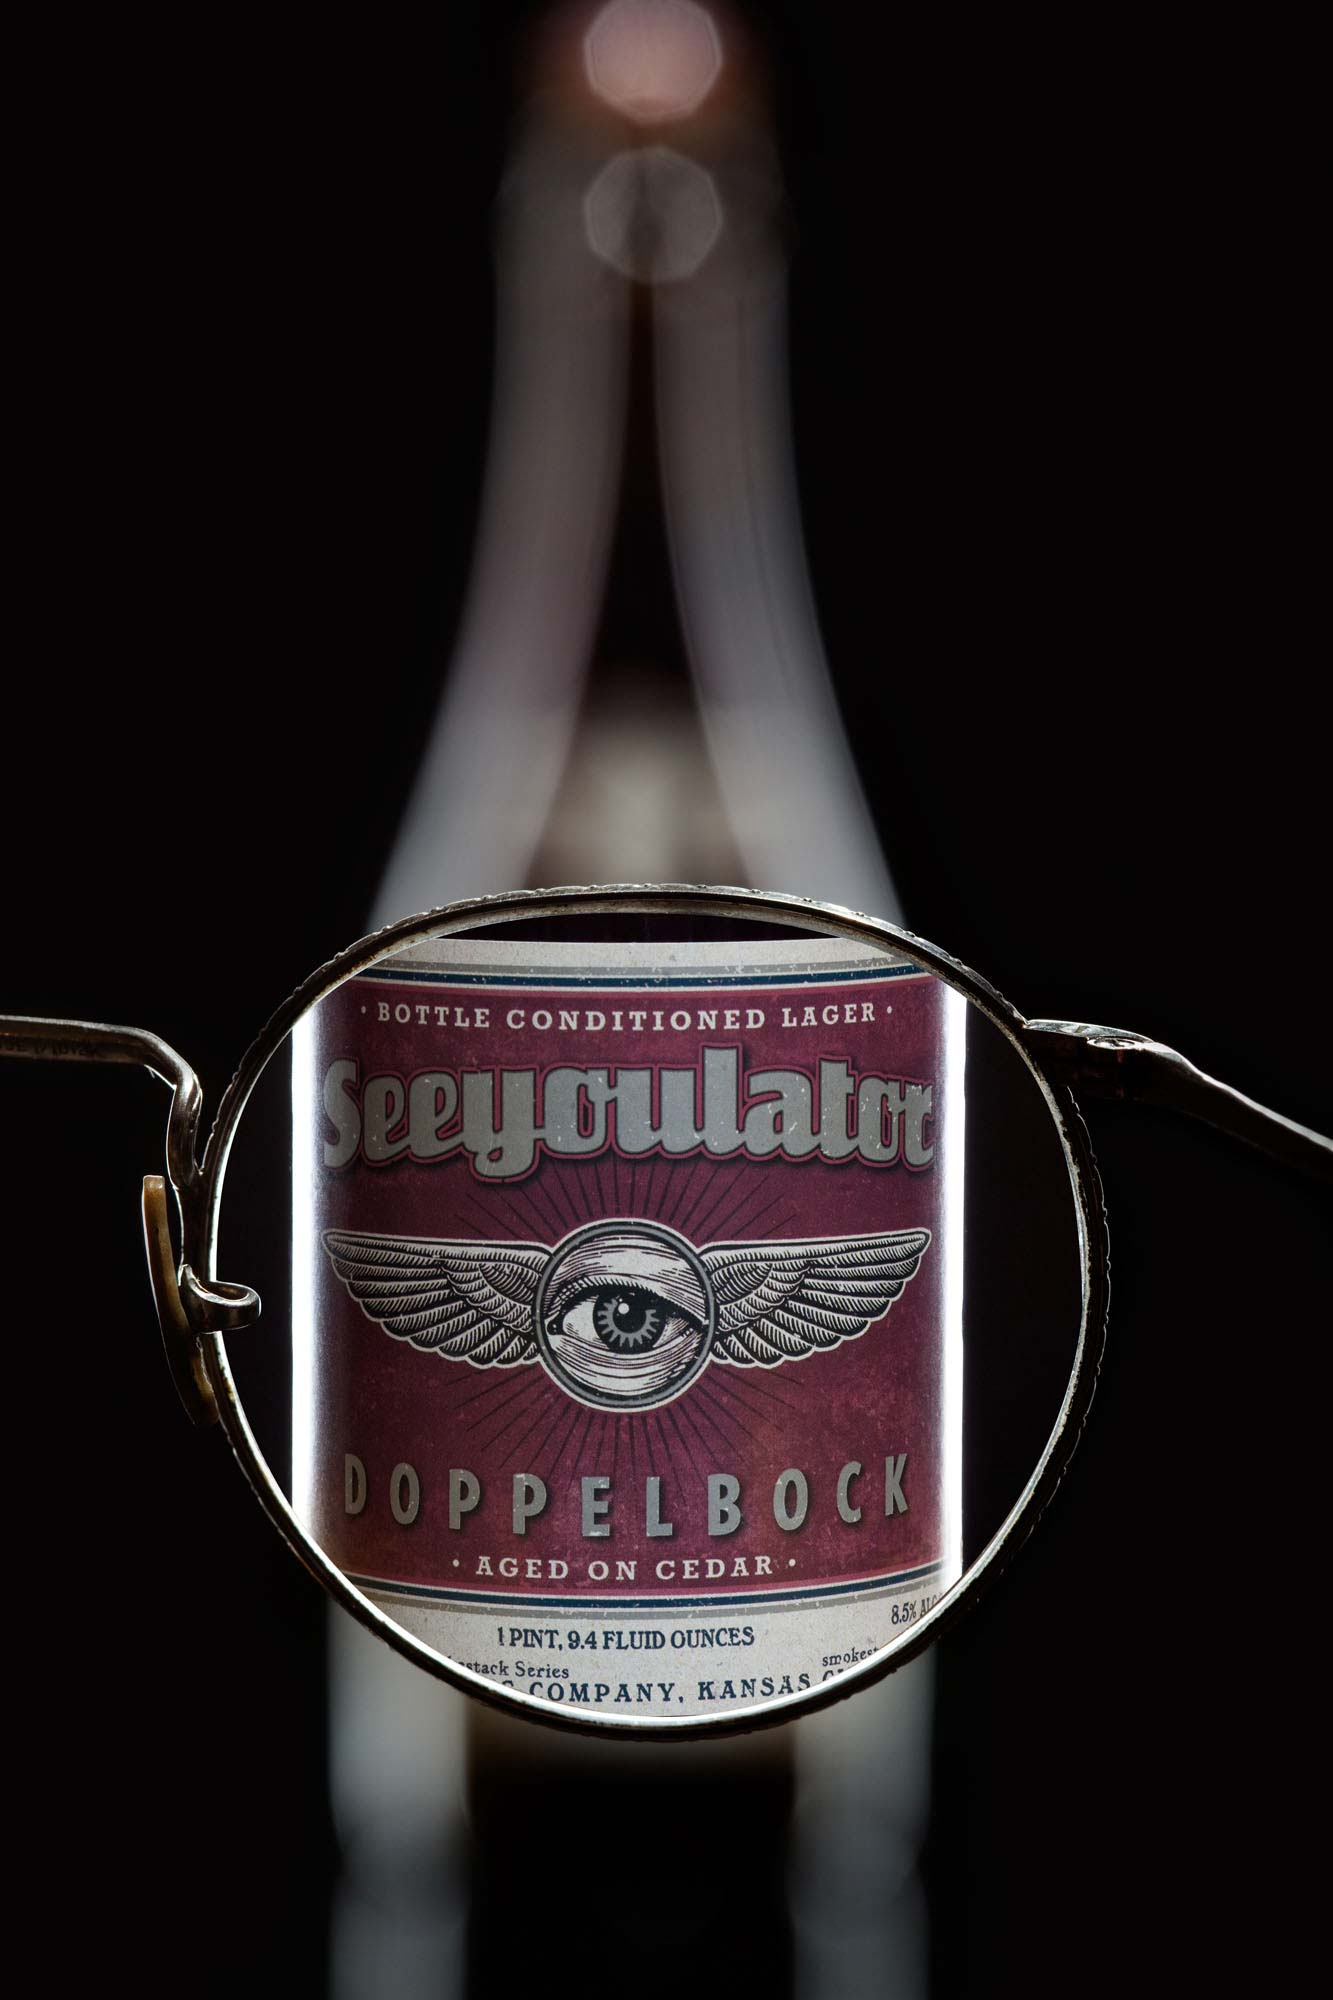 Looking through glasses lens making blurry beer bottle sharp - See You Later Doppelbock Cider | Bottle Photography | Dramatic Product Photography  | Still Life Photography | Shot in Denver, Colorado